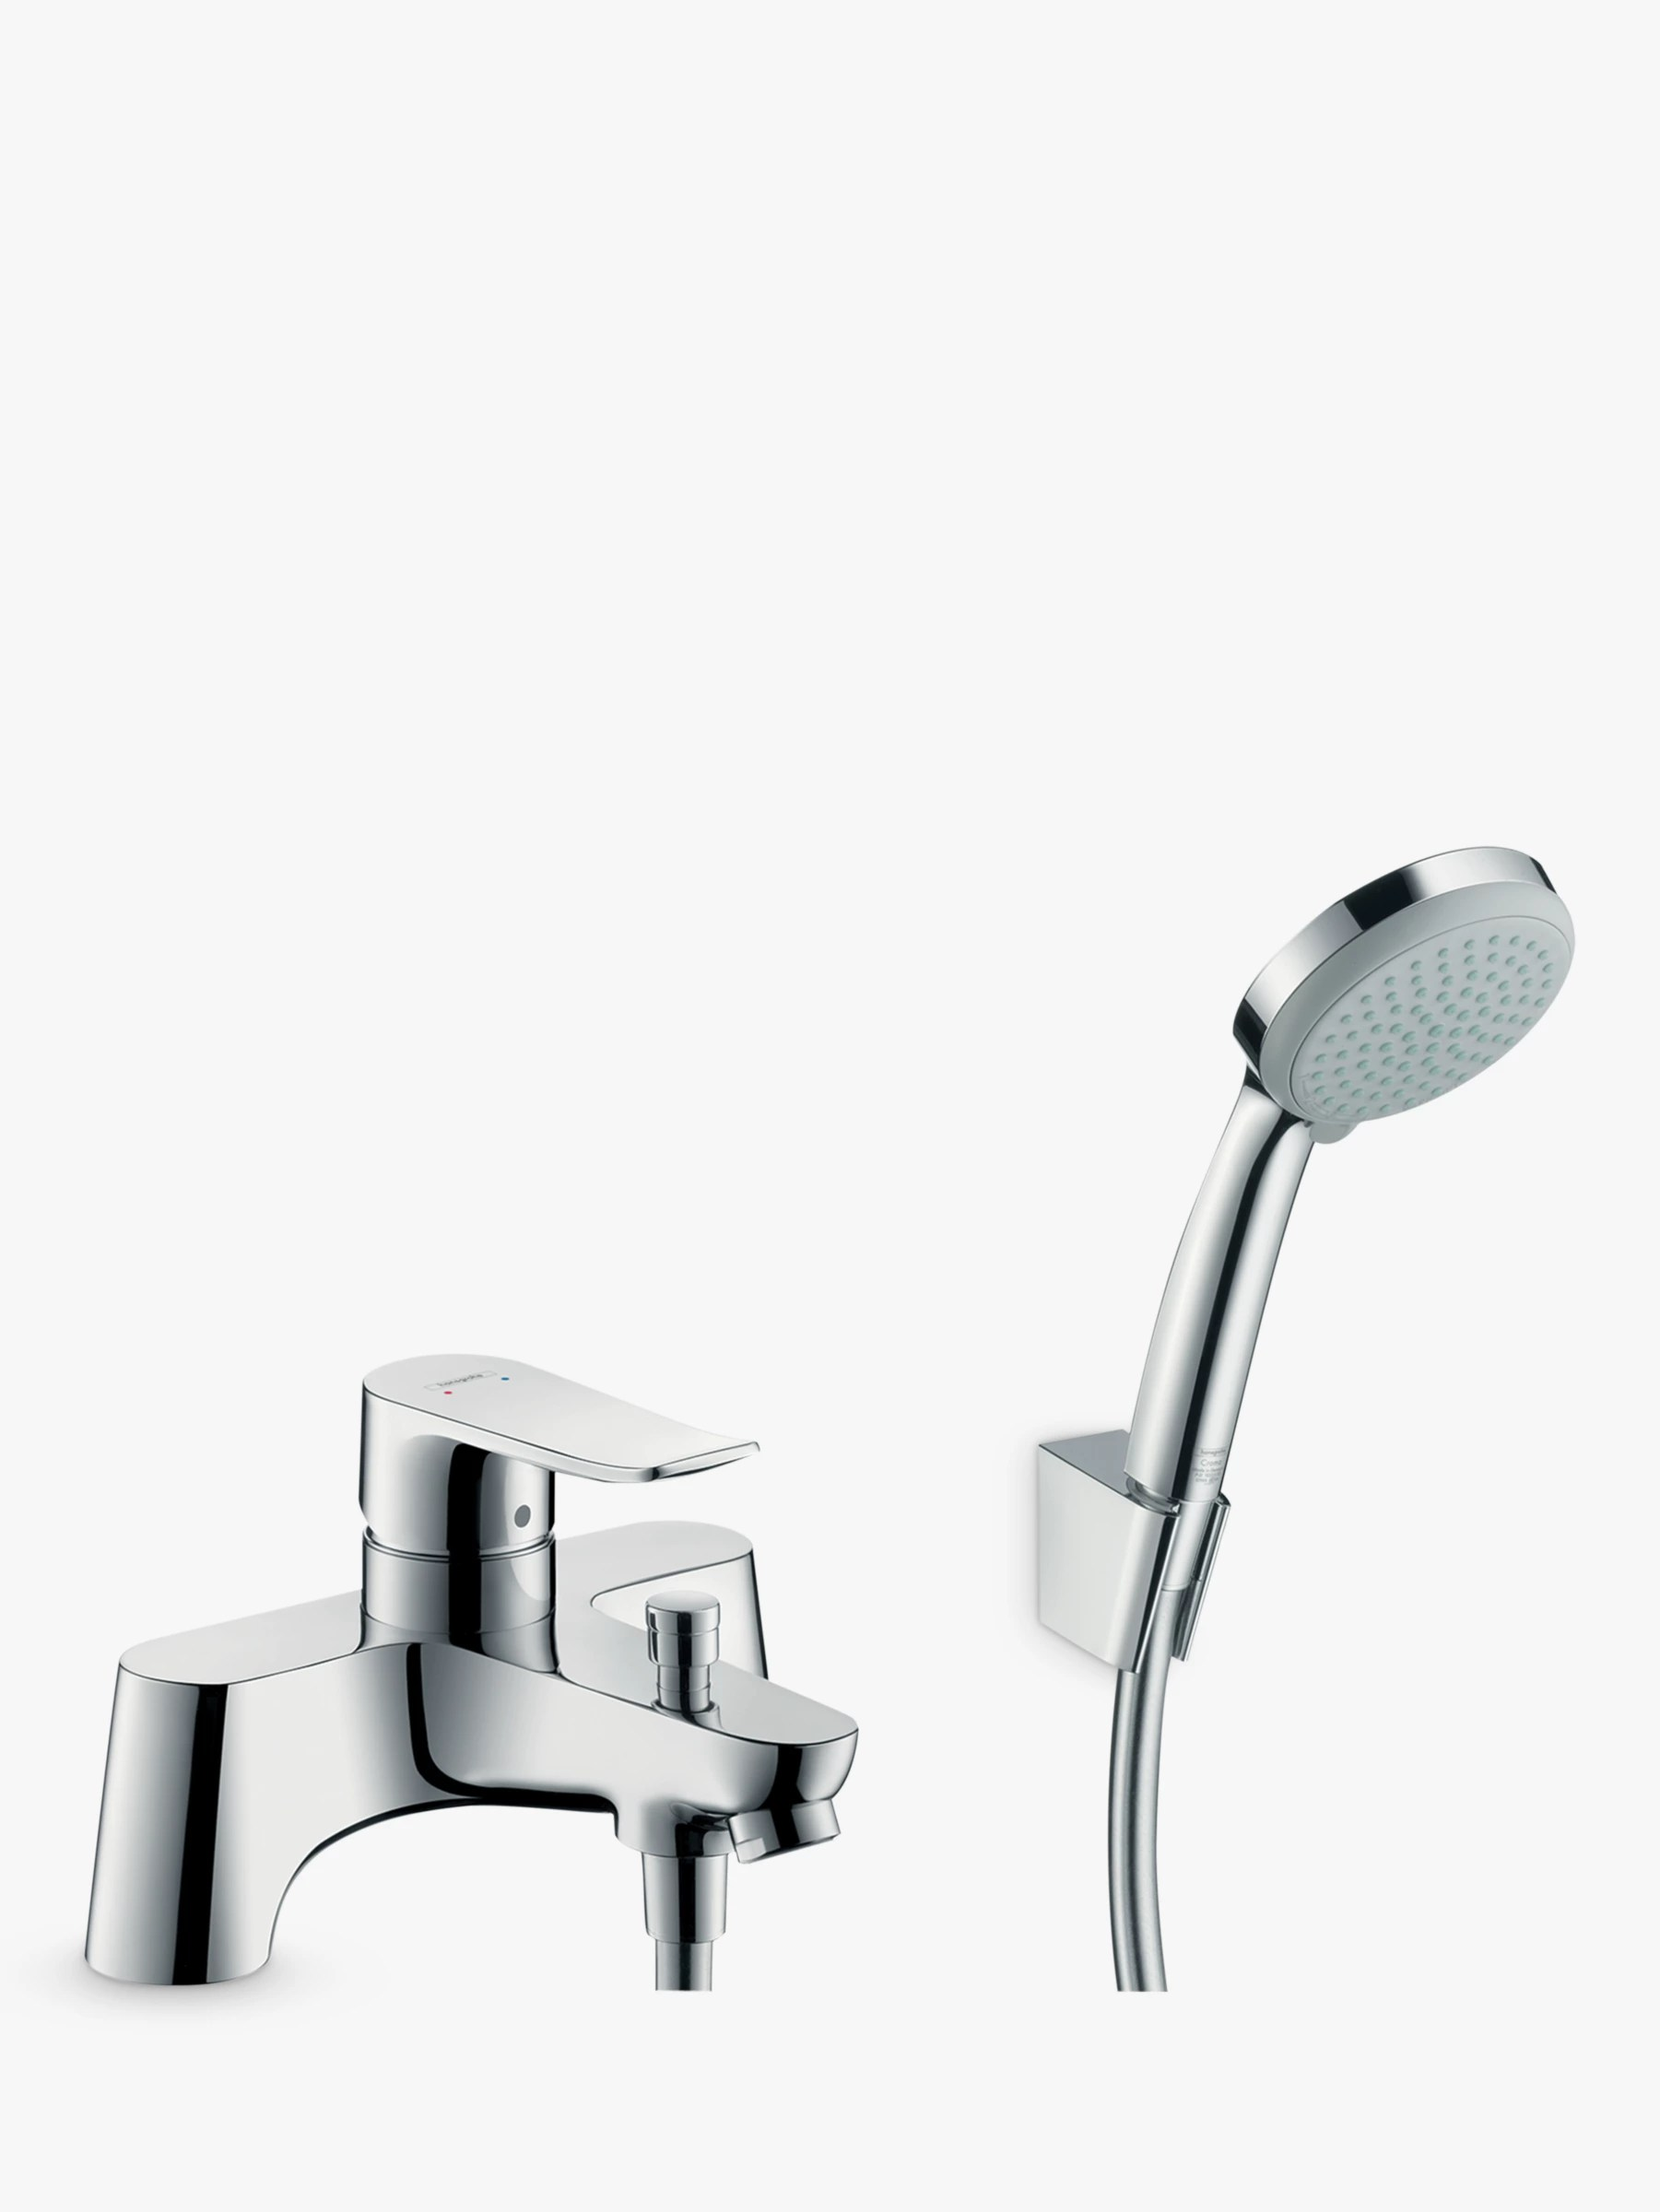 Hansgrohe Metris Single Lever Bathroom Mixer Tap With Shower Head Chrome